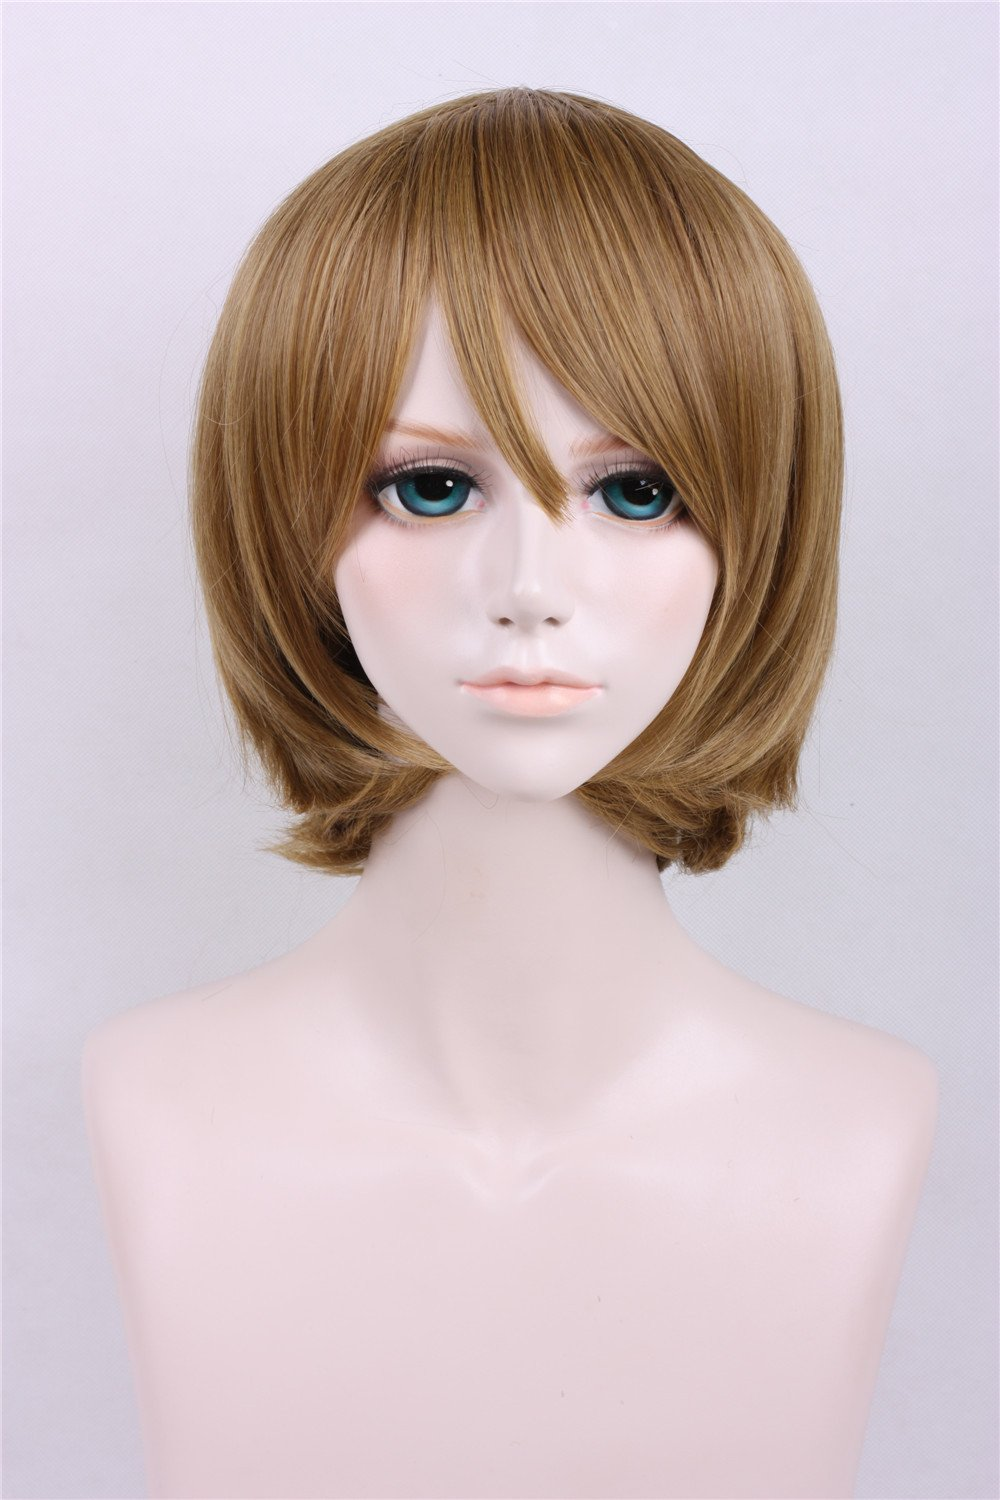 LanTing Peluca Lovelive Hanayo Koizumi Brown Short Styled Woman Cosplay Party Fashion Anime Human costume Full Wigs Synthetic Hair Heat Resistant Fiber ...